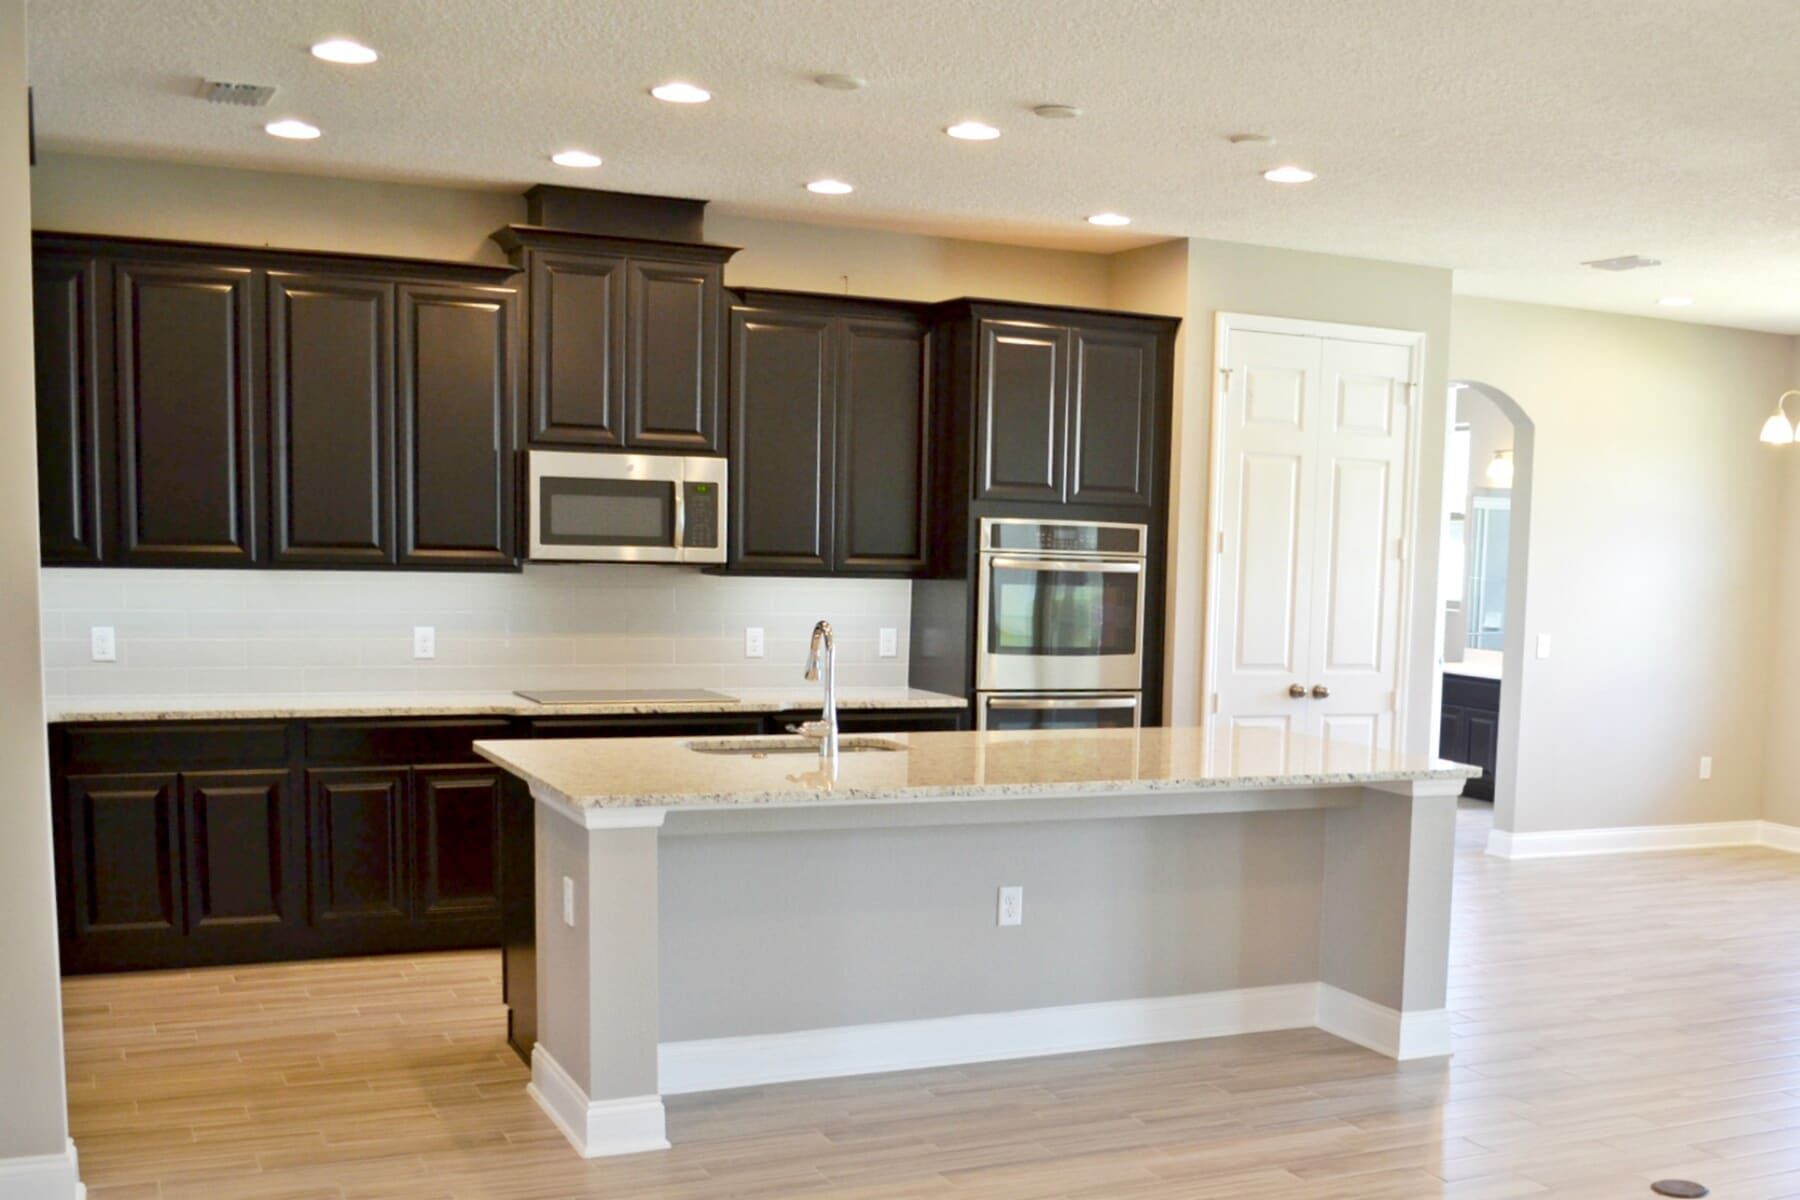 Kitchen featured in the Savannah Fl By M/I Homes in Orlando, FL